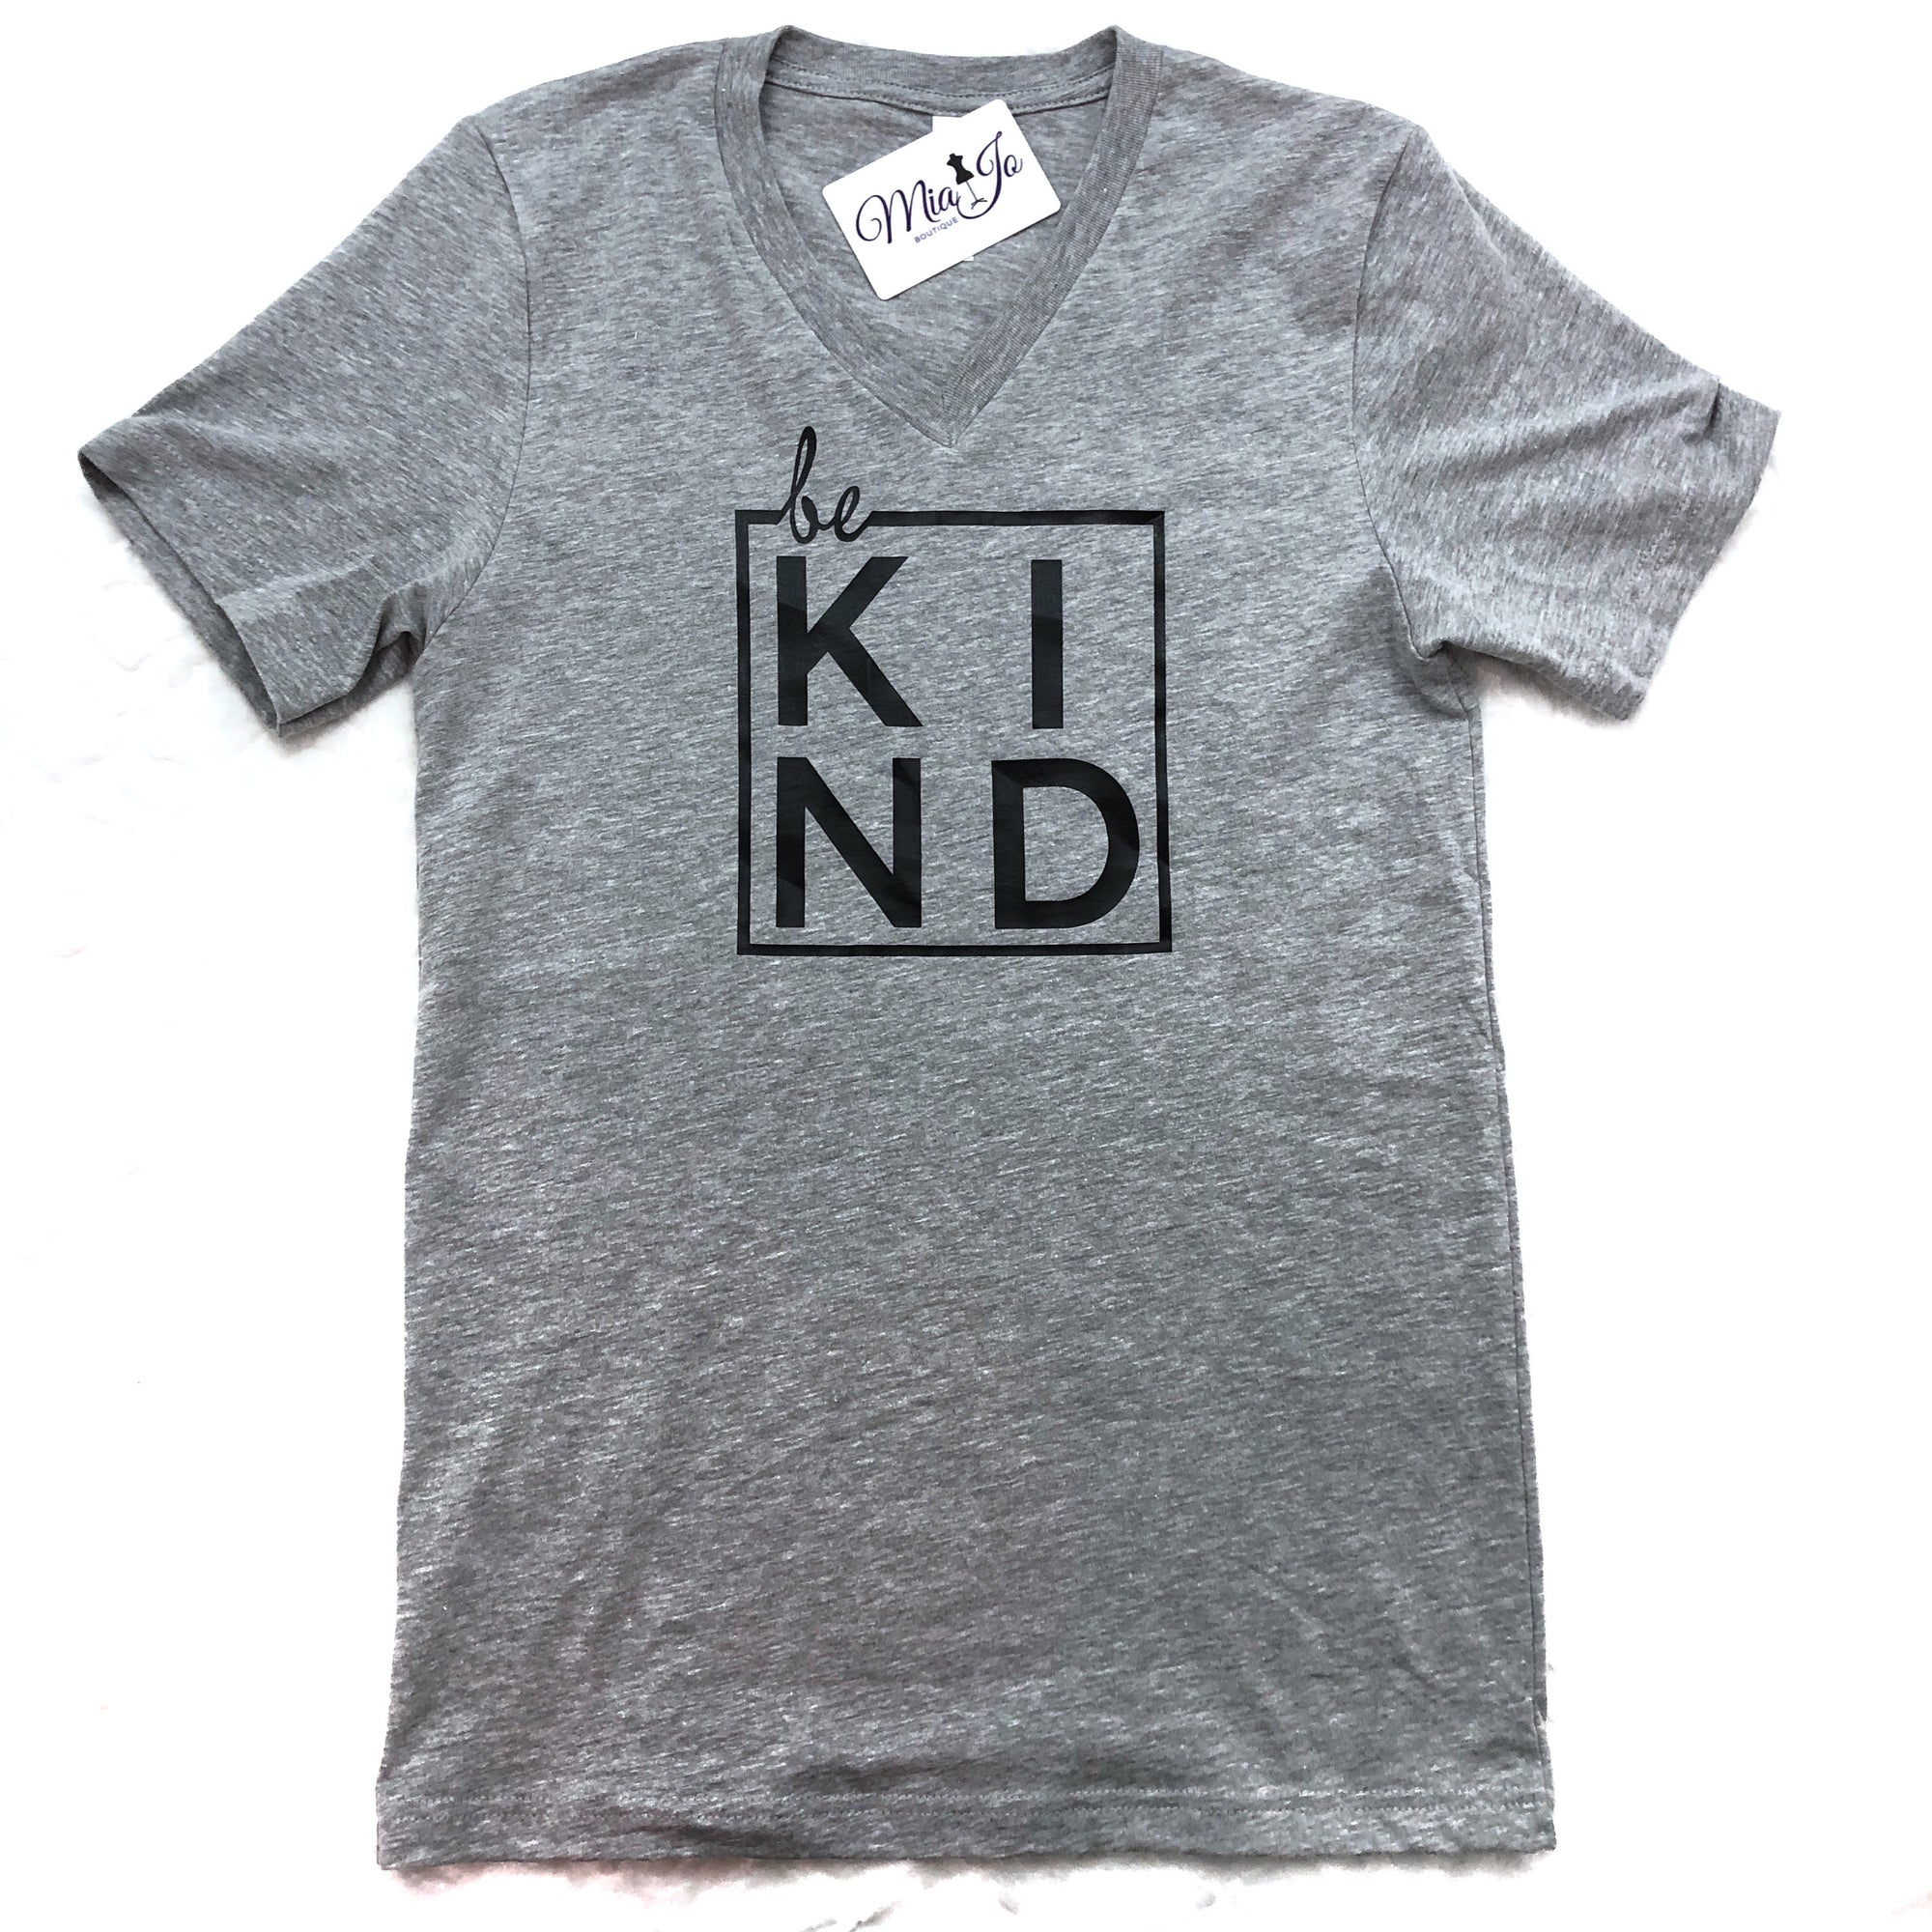 BE KIND v neck graphic